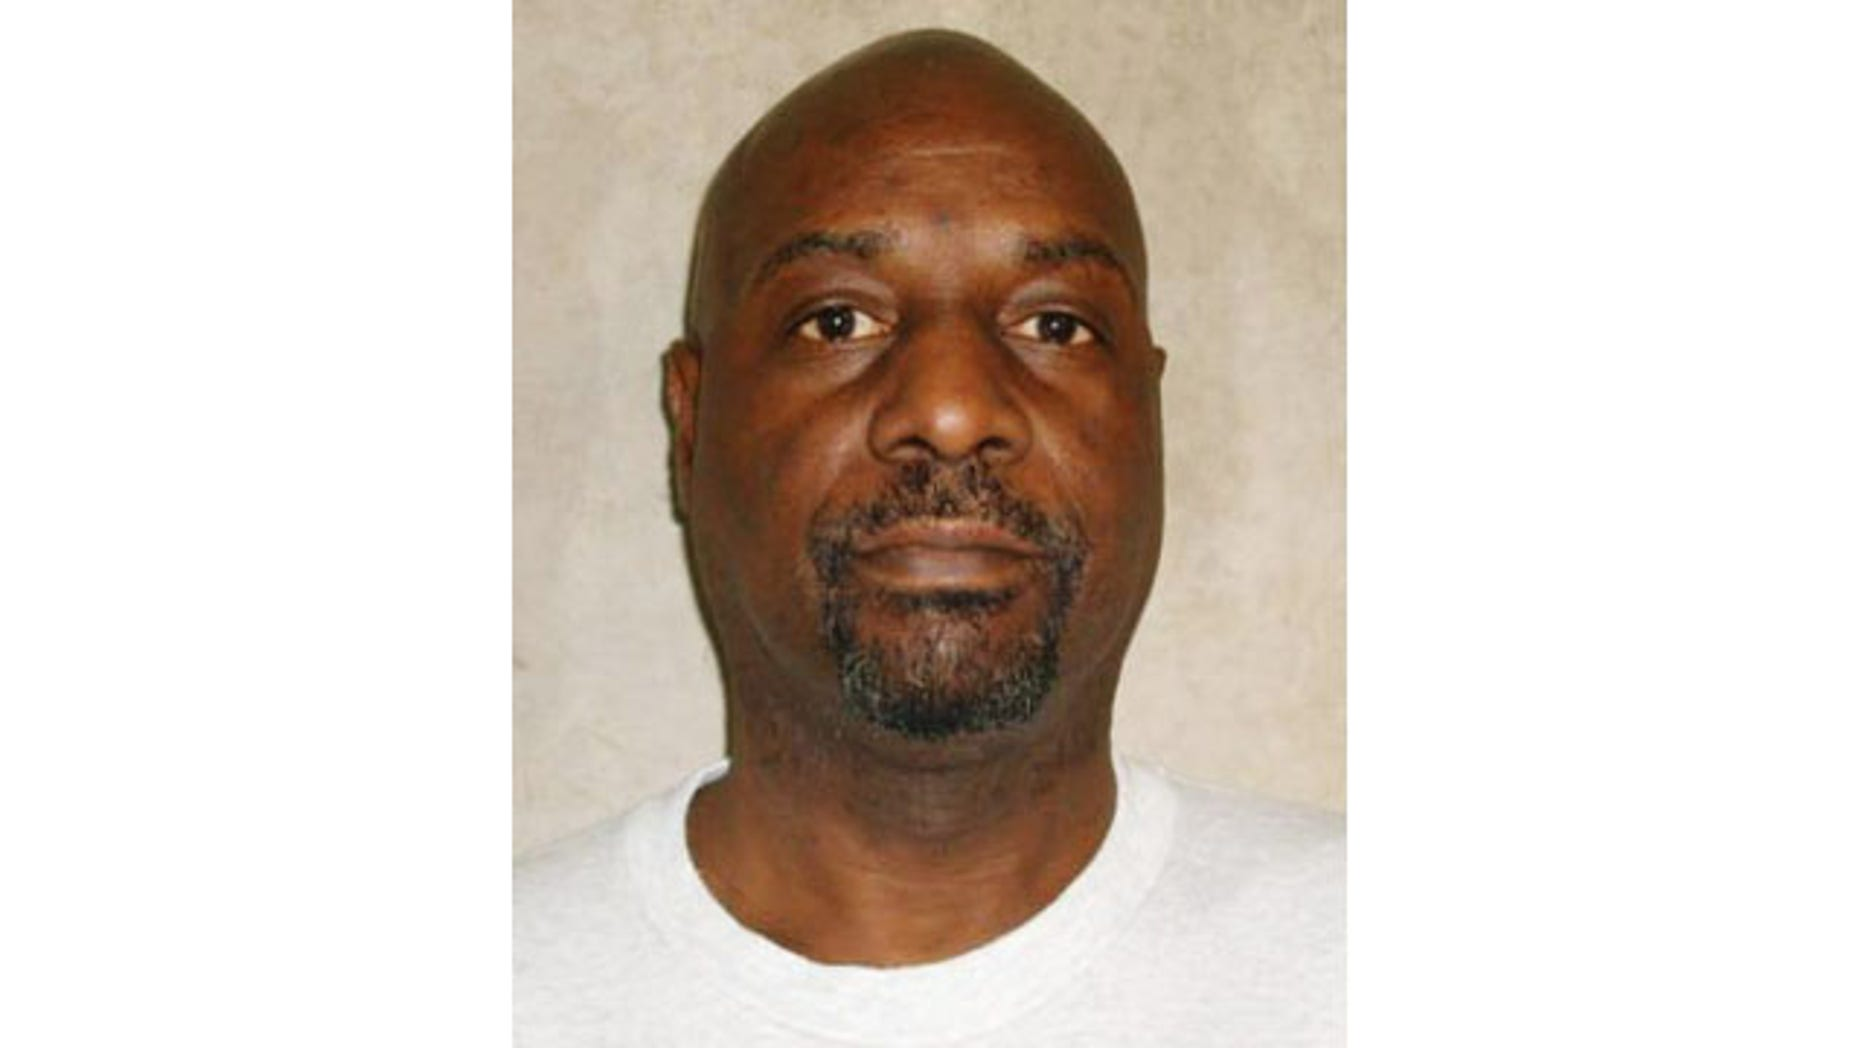 December 10, 2013: This photo provided by the Oklahoma Department of Corrections shows Ronald Clinton Lott, who was executed on Tuesday for killing two elderly women more than a quarter-century ago. (AP Photo/Oklahoma Department of Corrections)